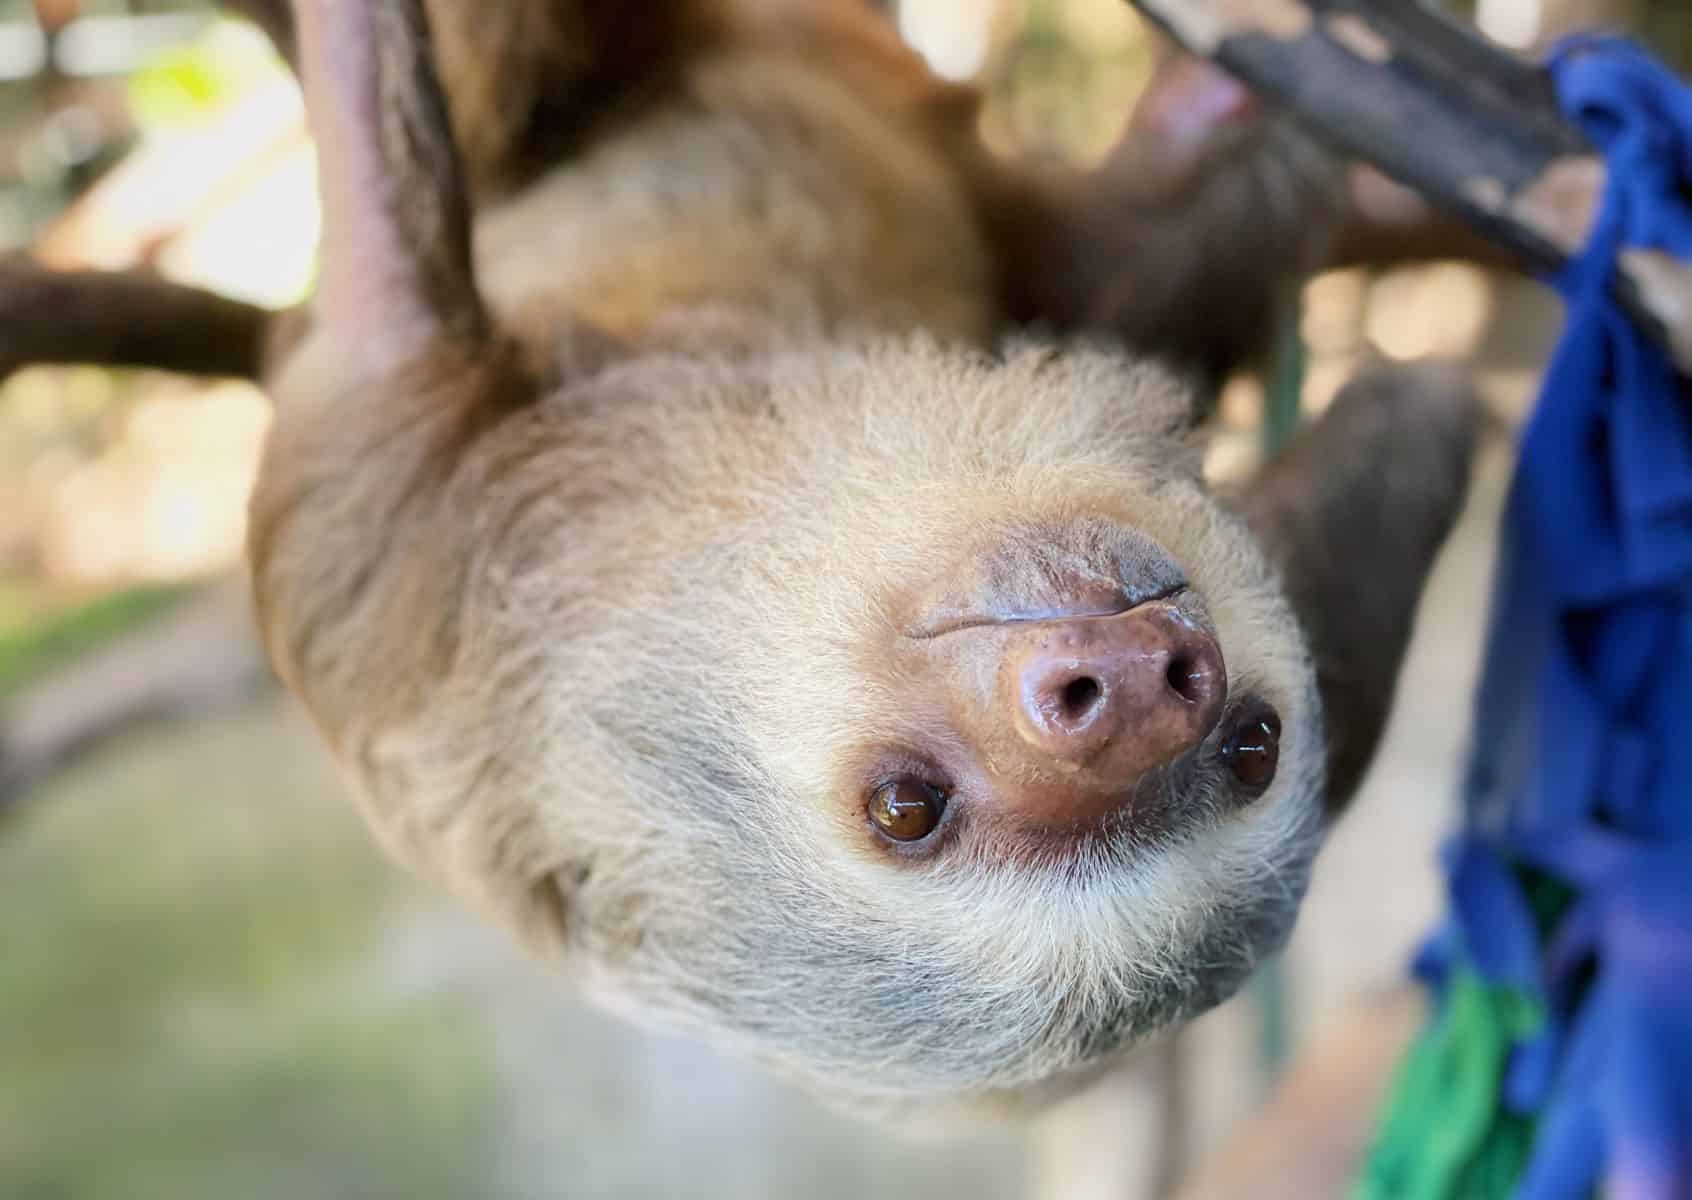 Admire Costa Rica's wildlife from a responsible distance -- that's the #StopAnimalSelfies goal.